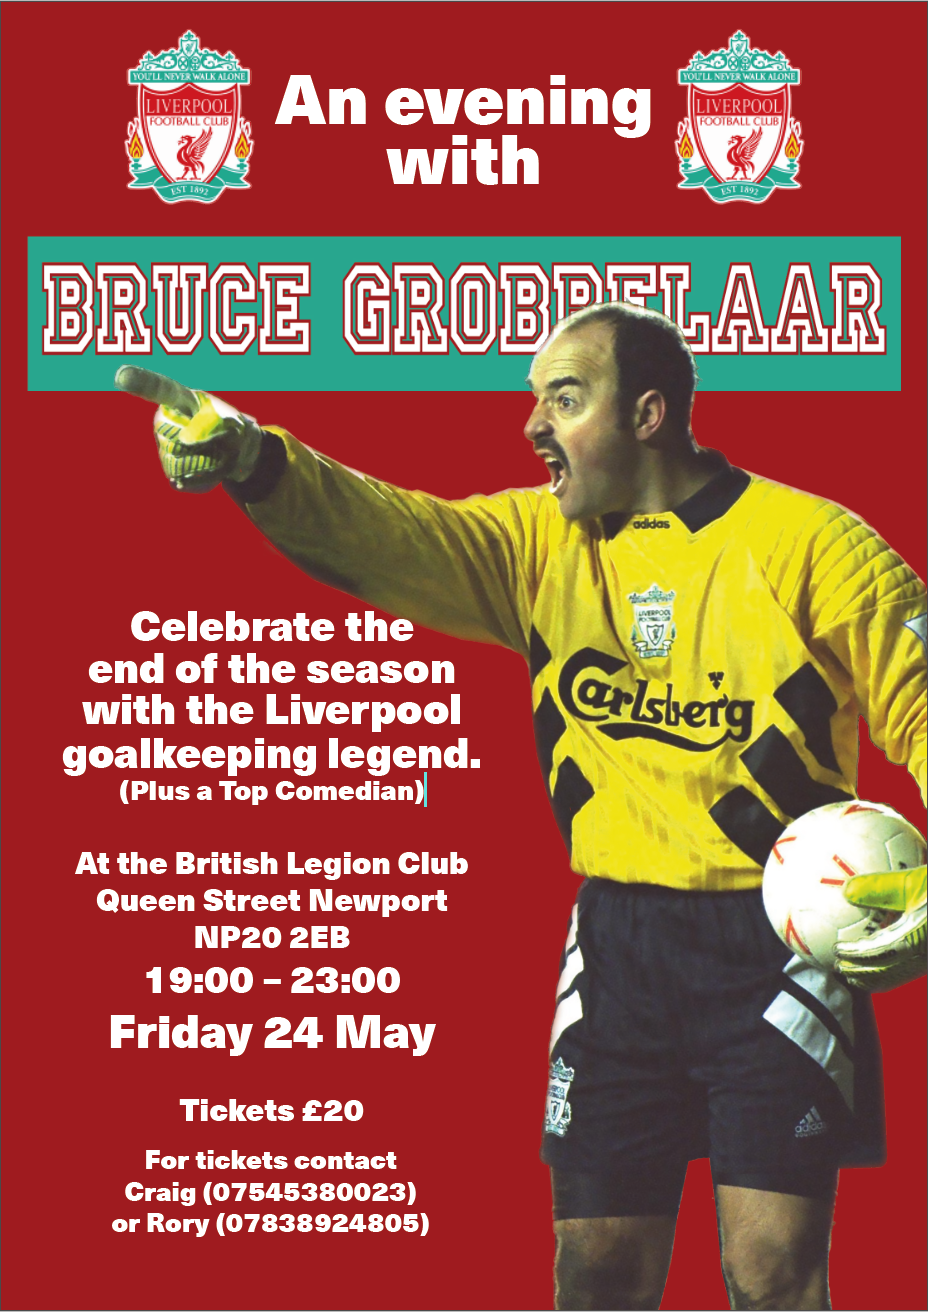 Ann evening with Bruce Grobbelaar